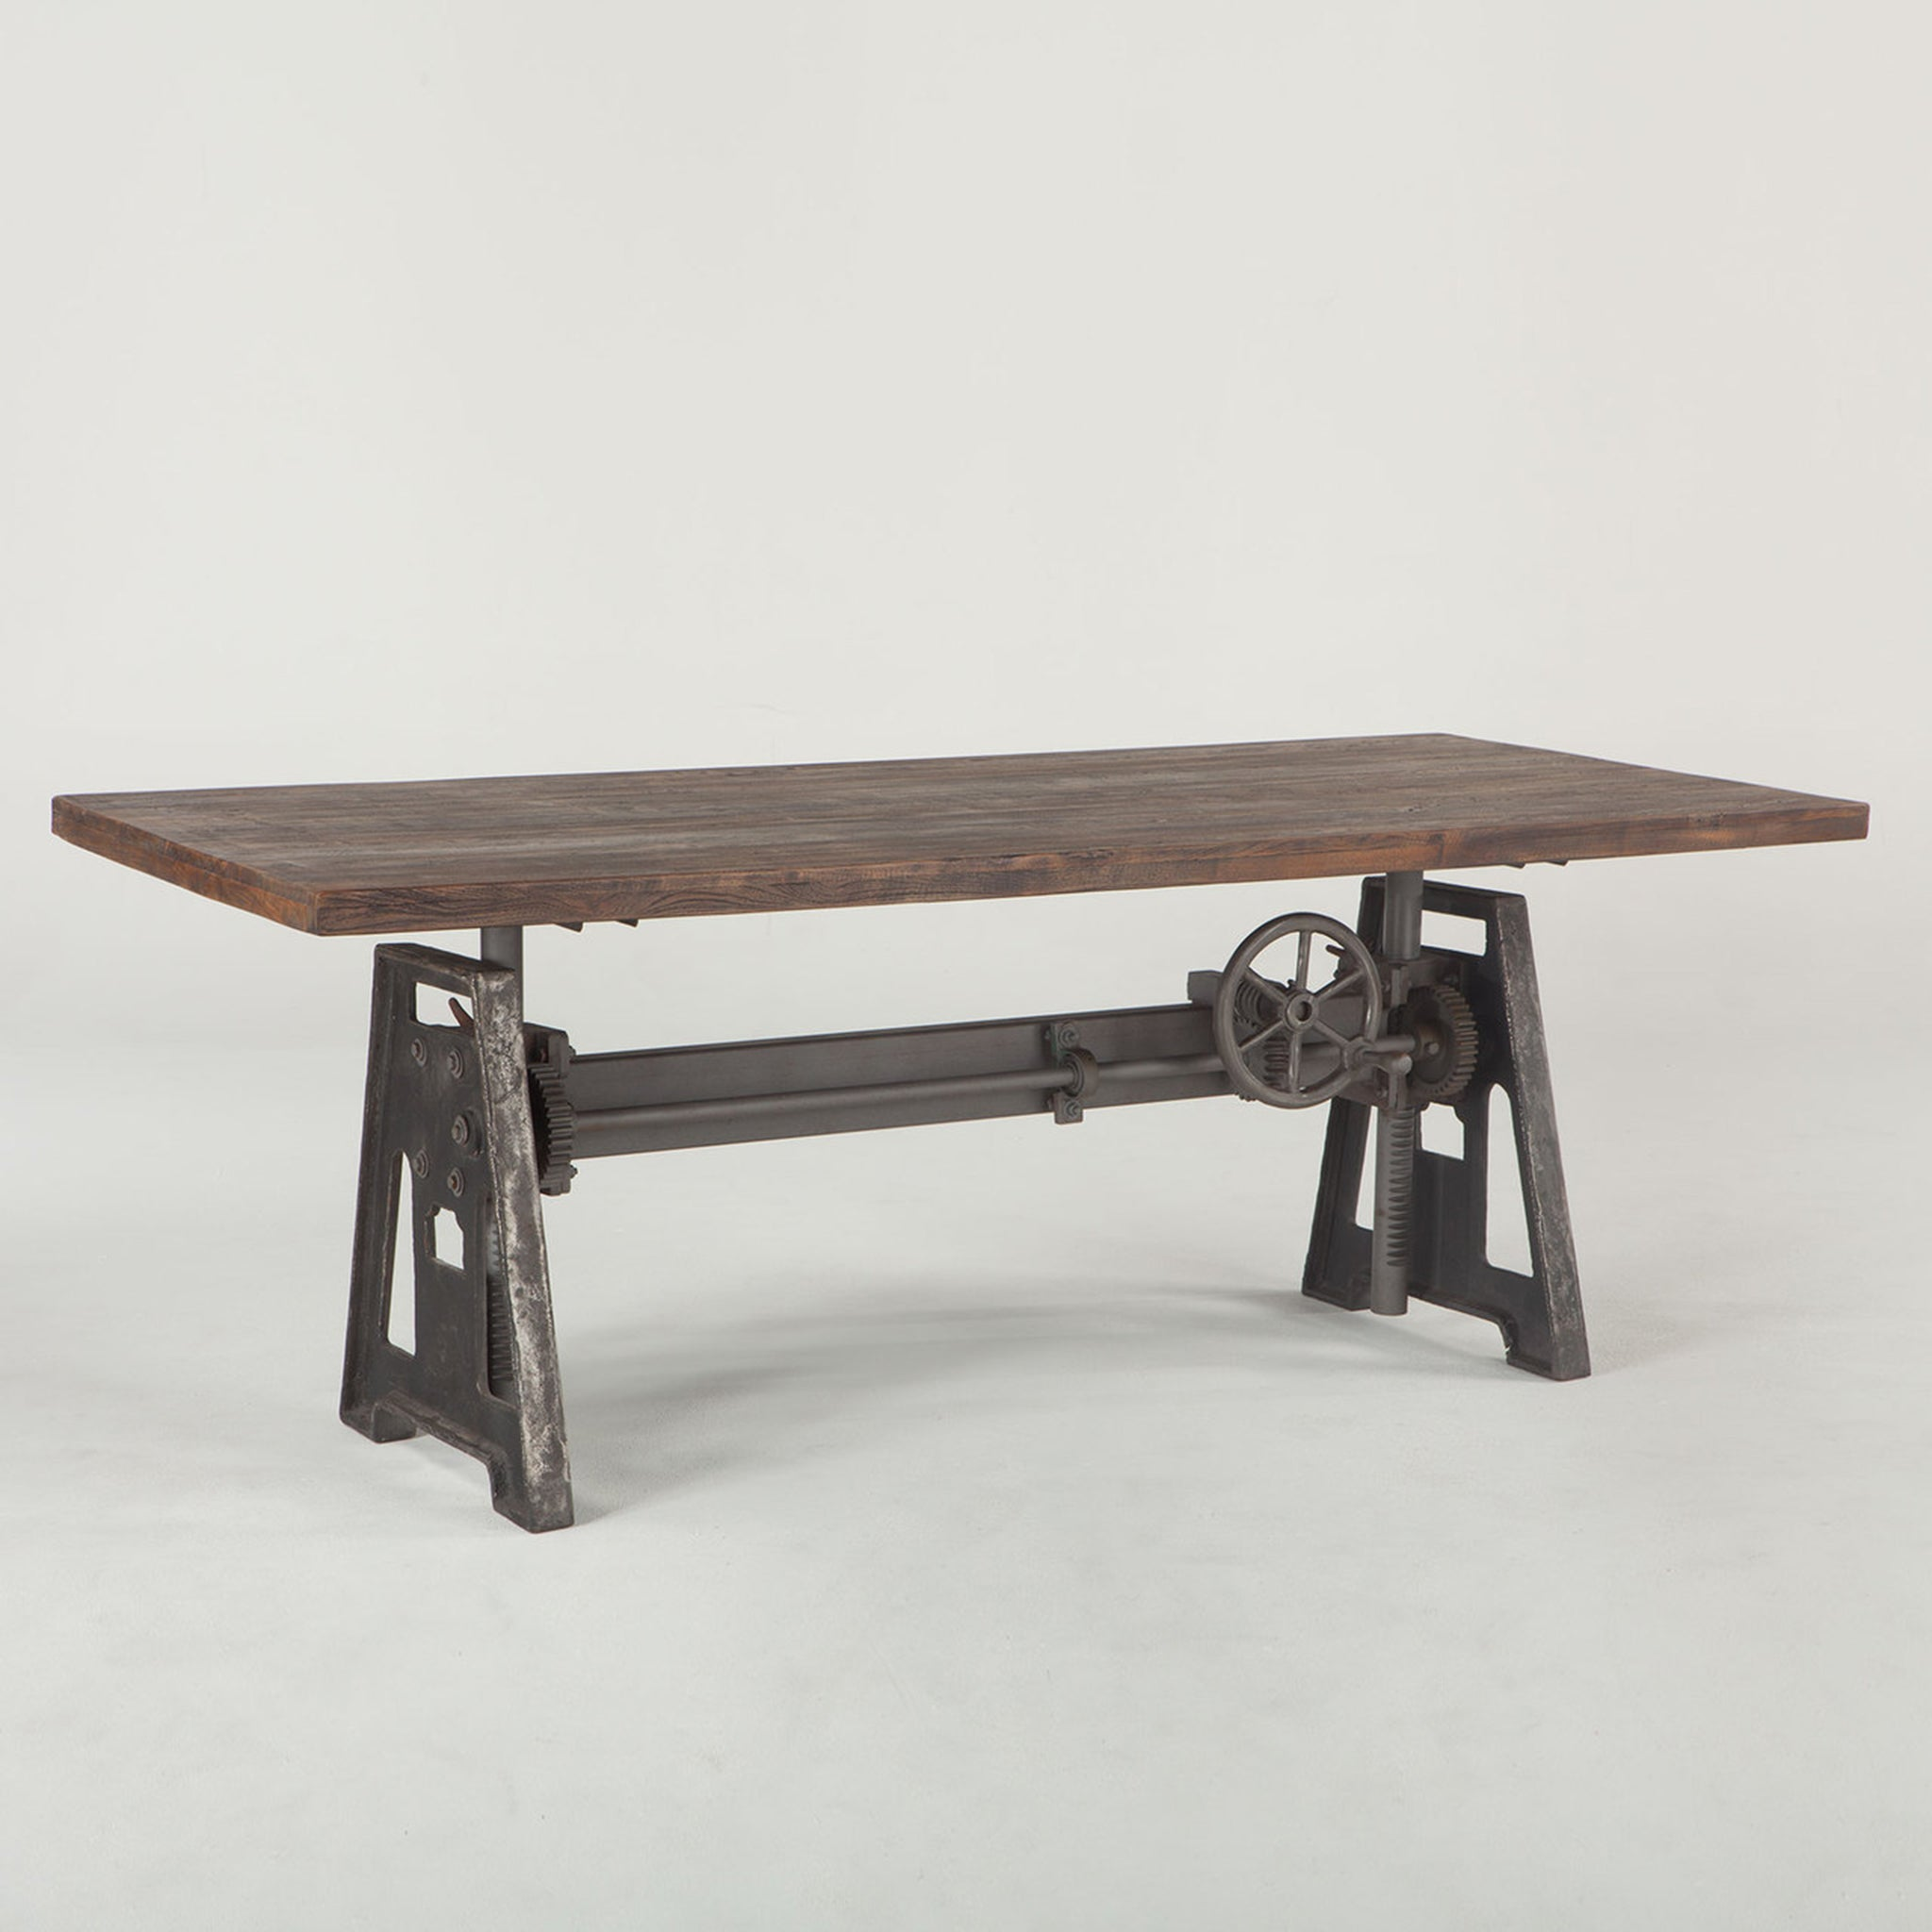 "Industrial Adjustable Height  Wood Dining Pub Table 83"" - Furniture on Main"